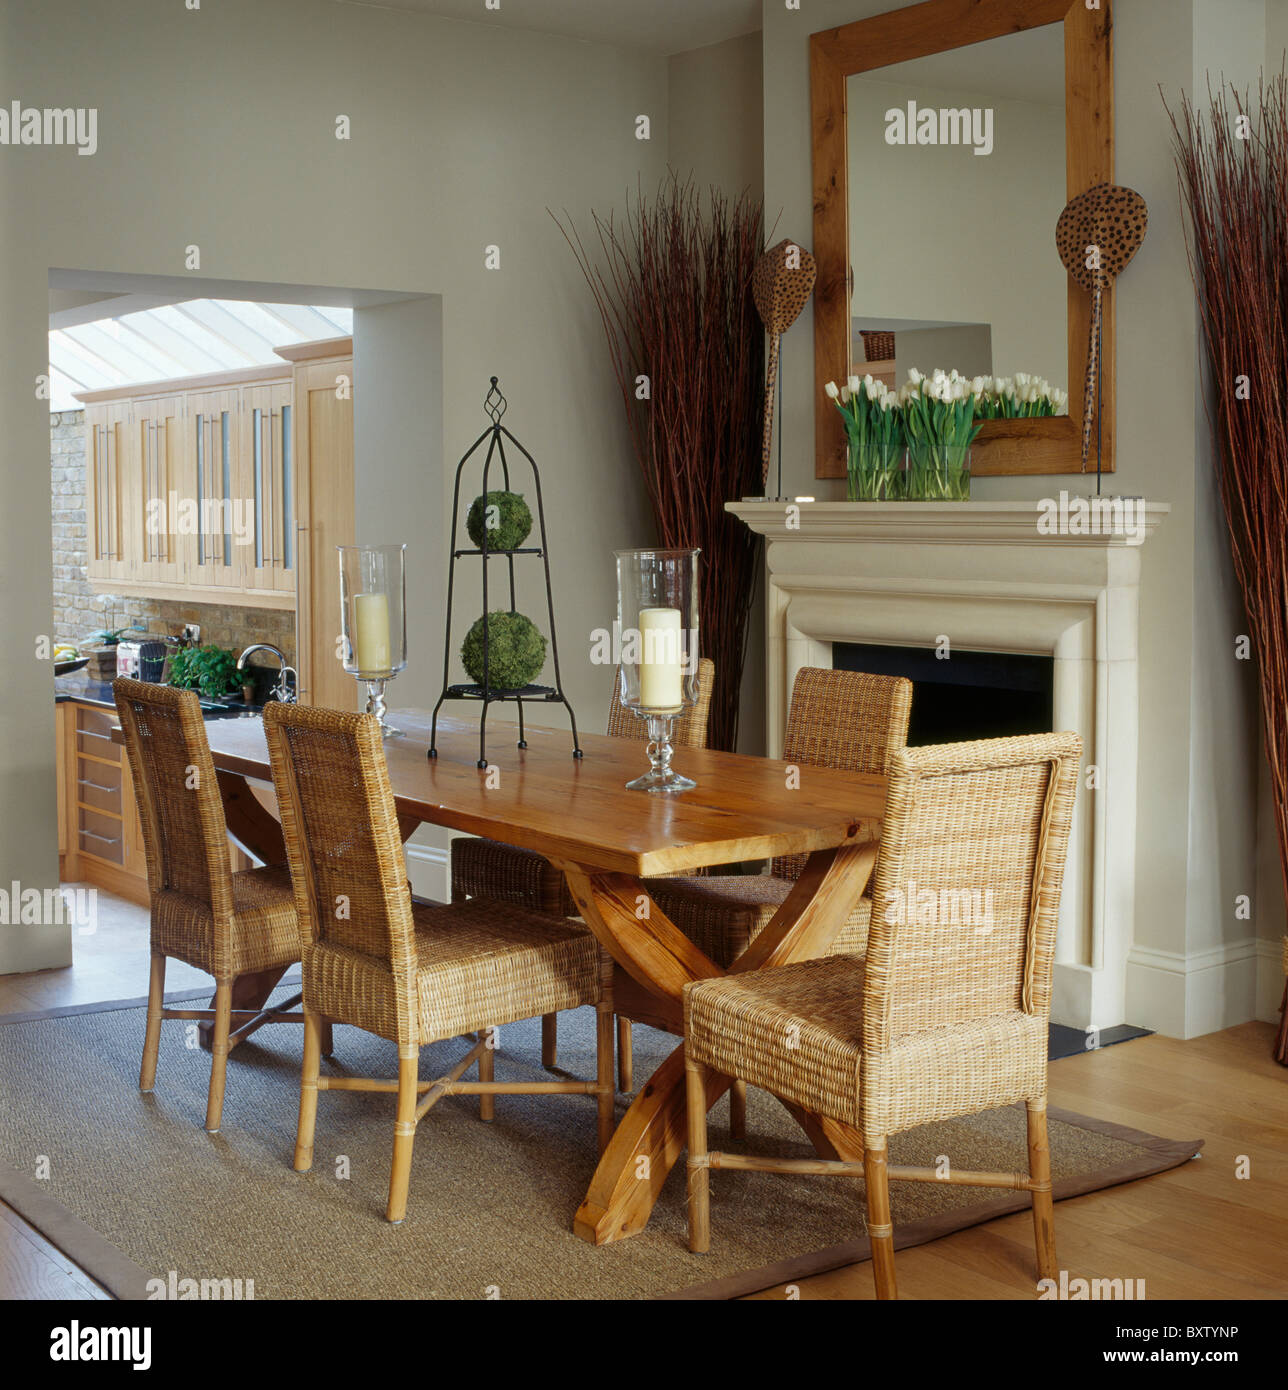 tall wicker chairs and plain wood table in pale gray townhouse